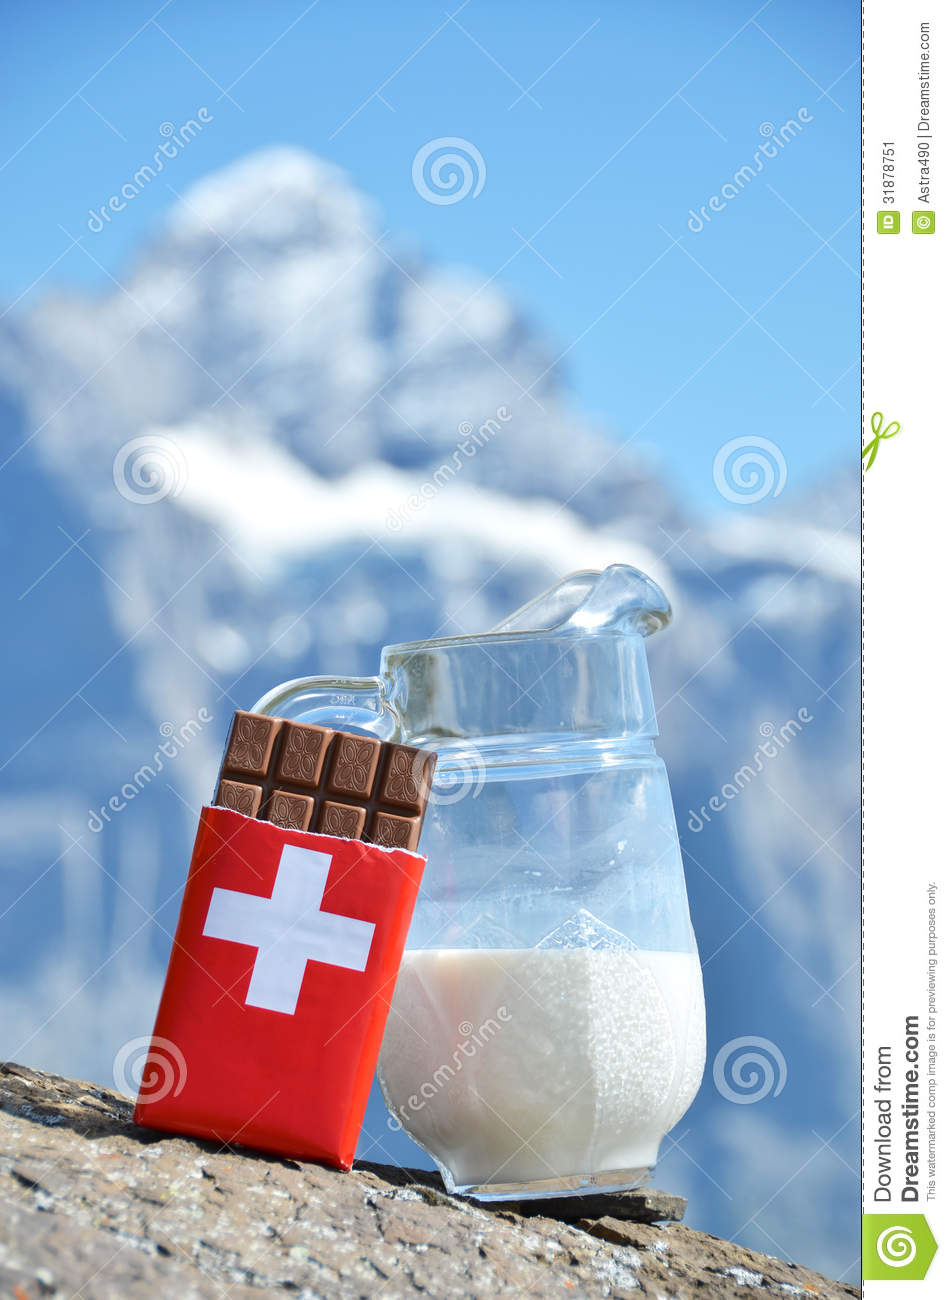 Swiss Chocolate And Jug Of Milk Stock Image - Image: 31878751